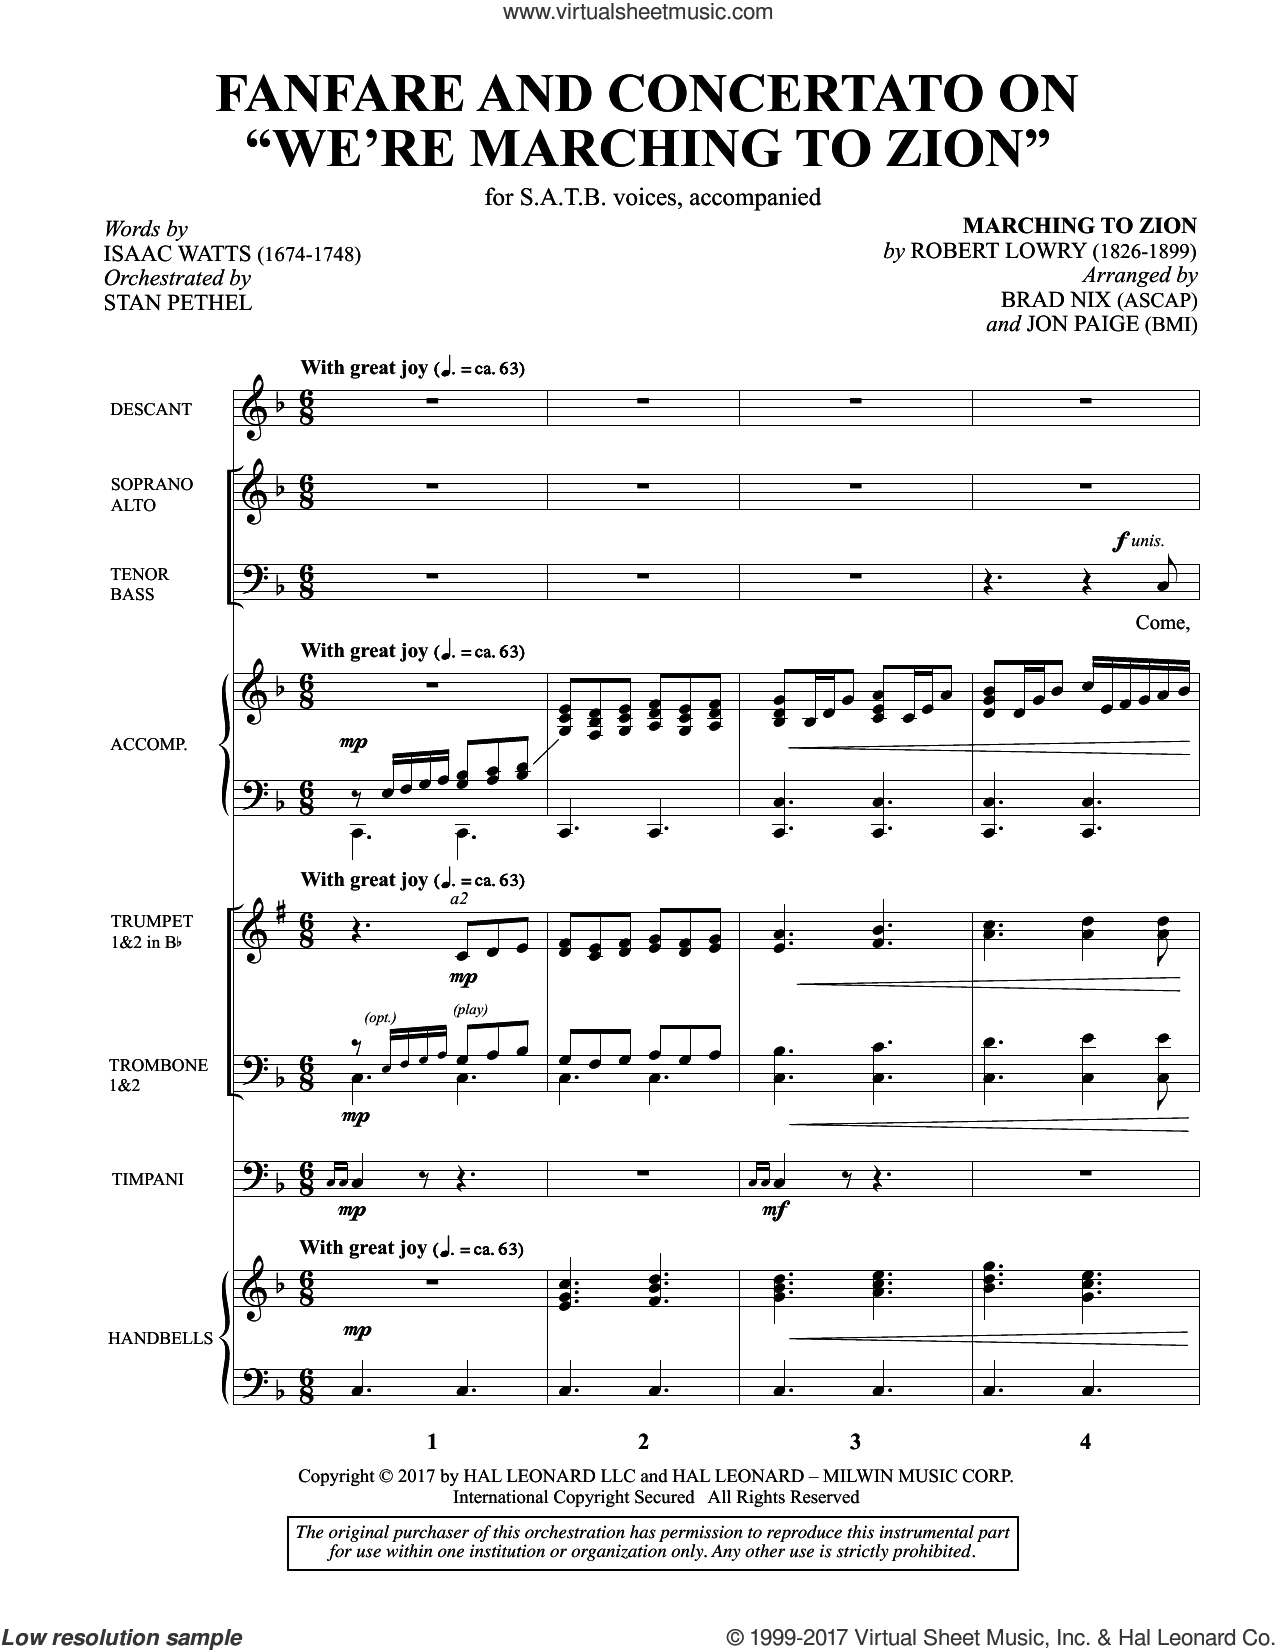 Fanfare and Concertato on 'We're Marching to Zion' (COMPLETE) sheet music for orchestra/band by Brad Nix, Isaac Watts, Jon Paige and Robert Lowry, intermediate skill level